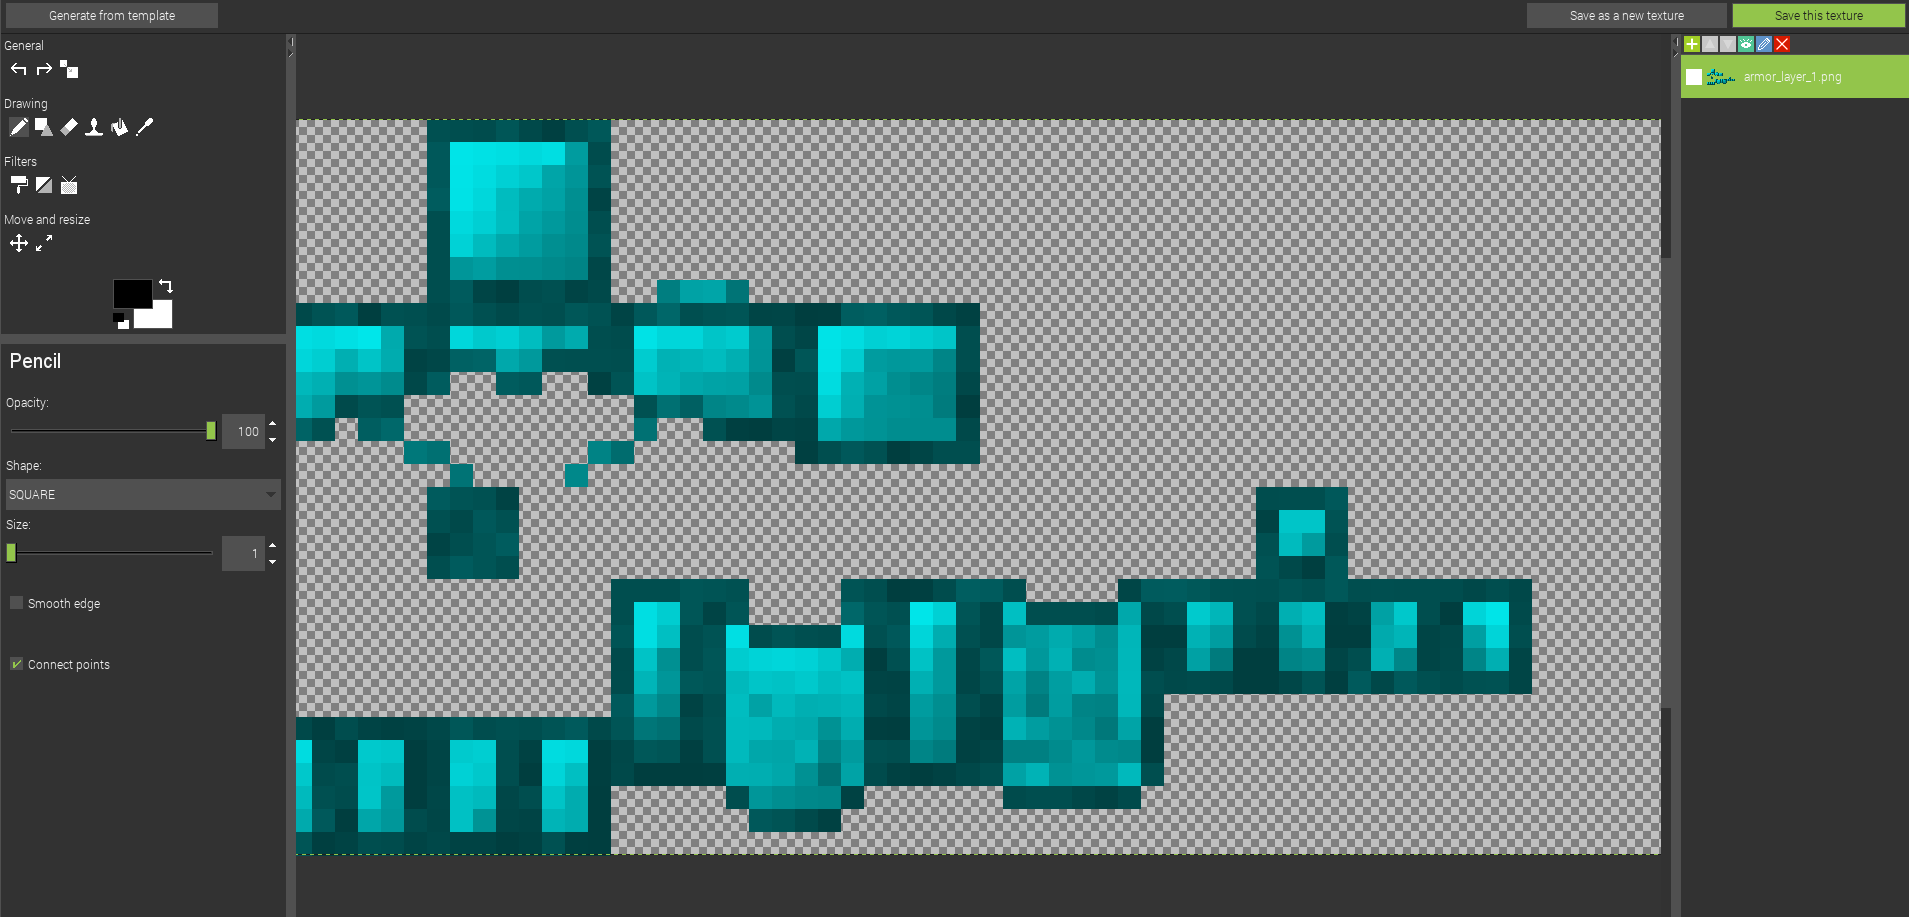 Editing the texture